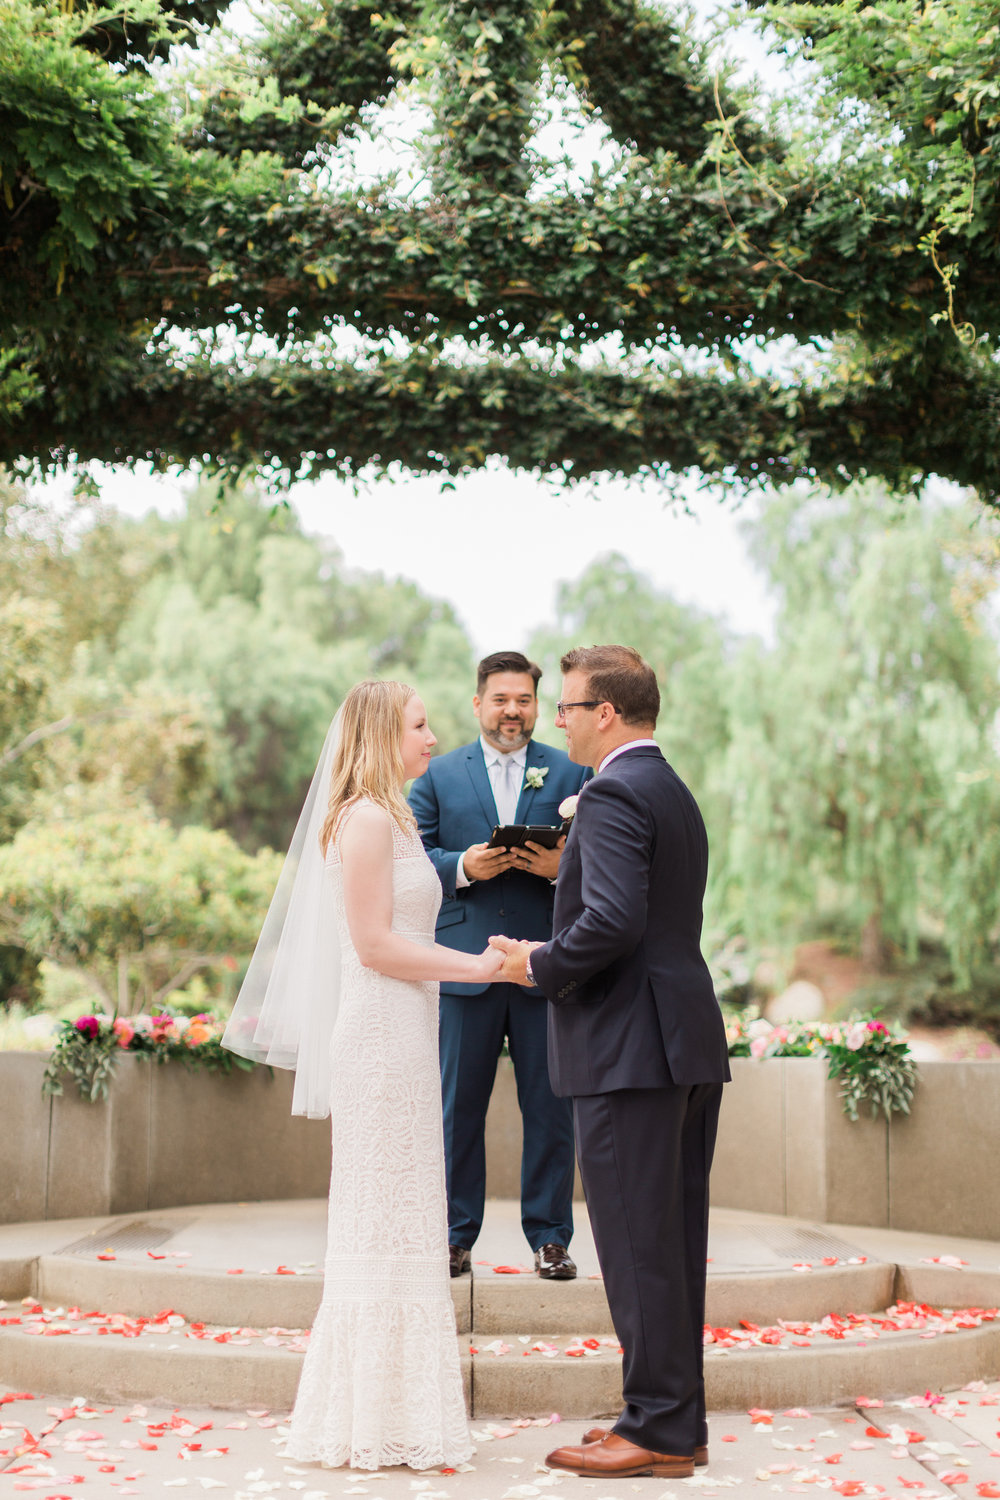 sandiegoweddingphotographer